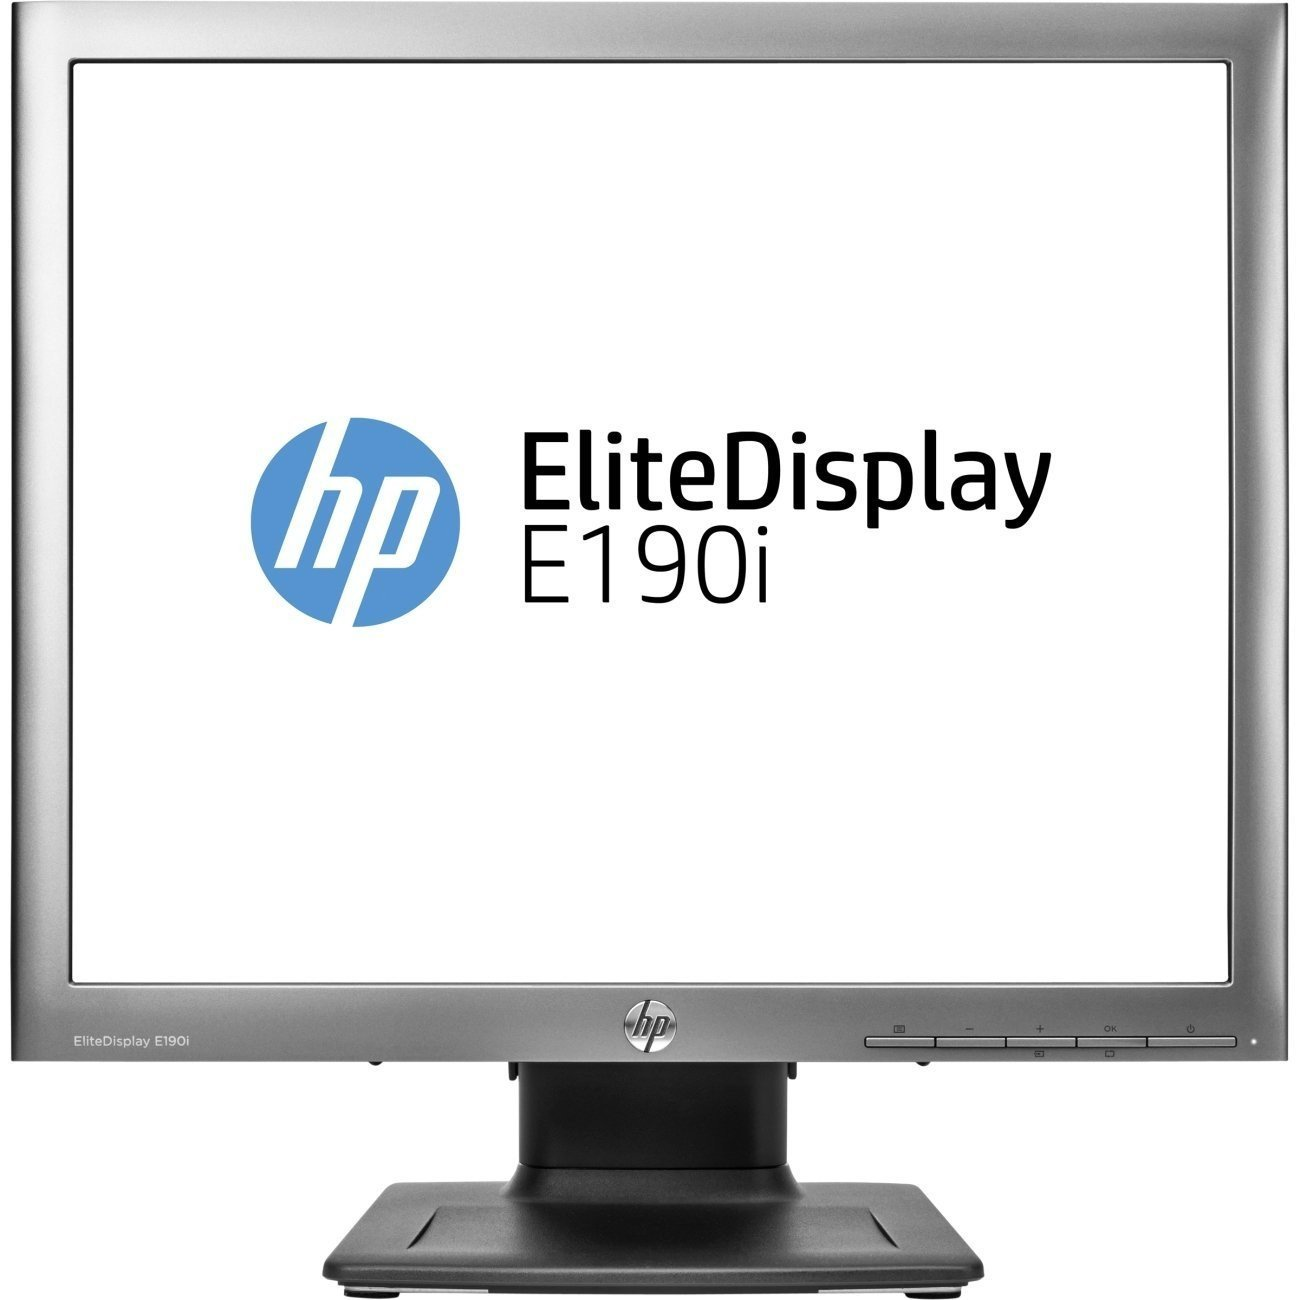 "HP EliteDisplay E190i 18.9"" IPS LED Monitor 5:4 - Black E4U30A"